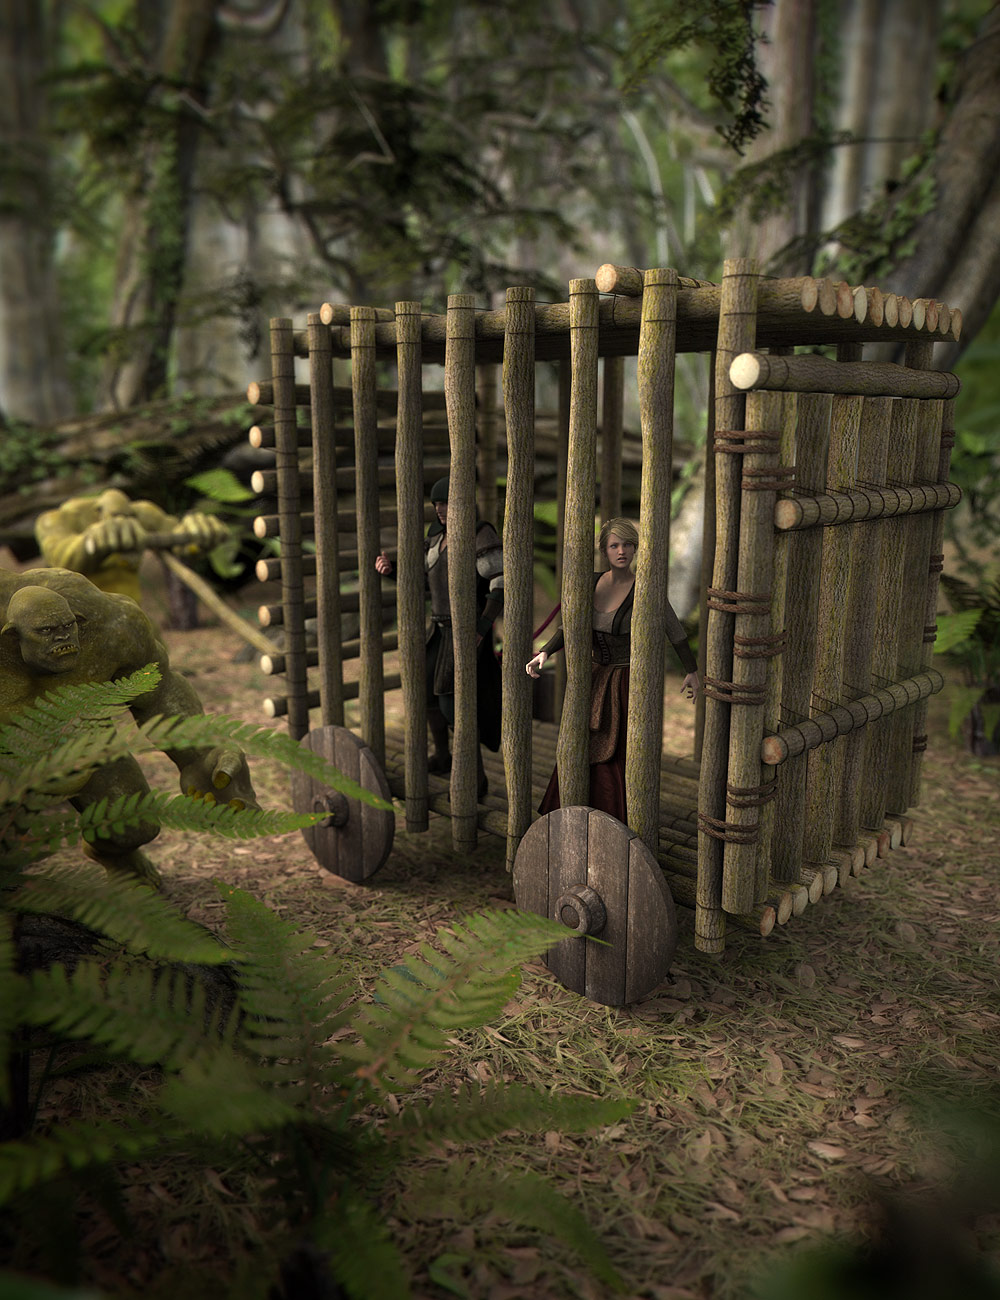 The Caged Cart by: ARTCollab, 3D Models by Daz 3D